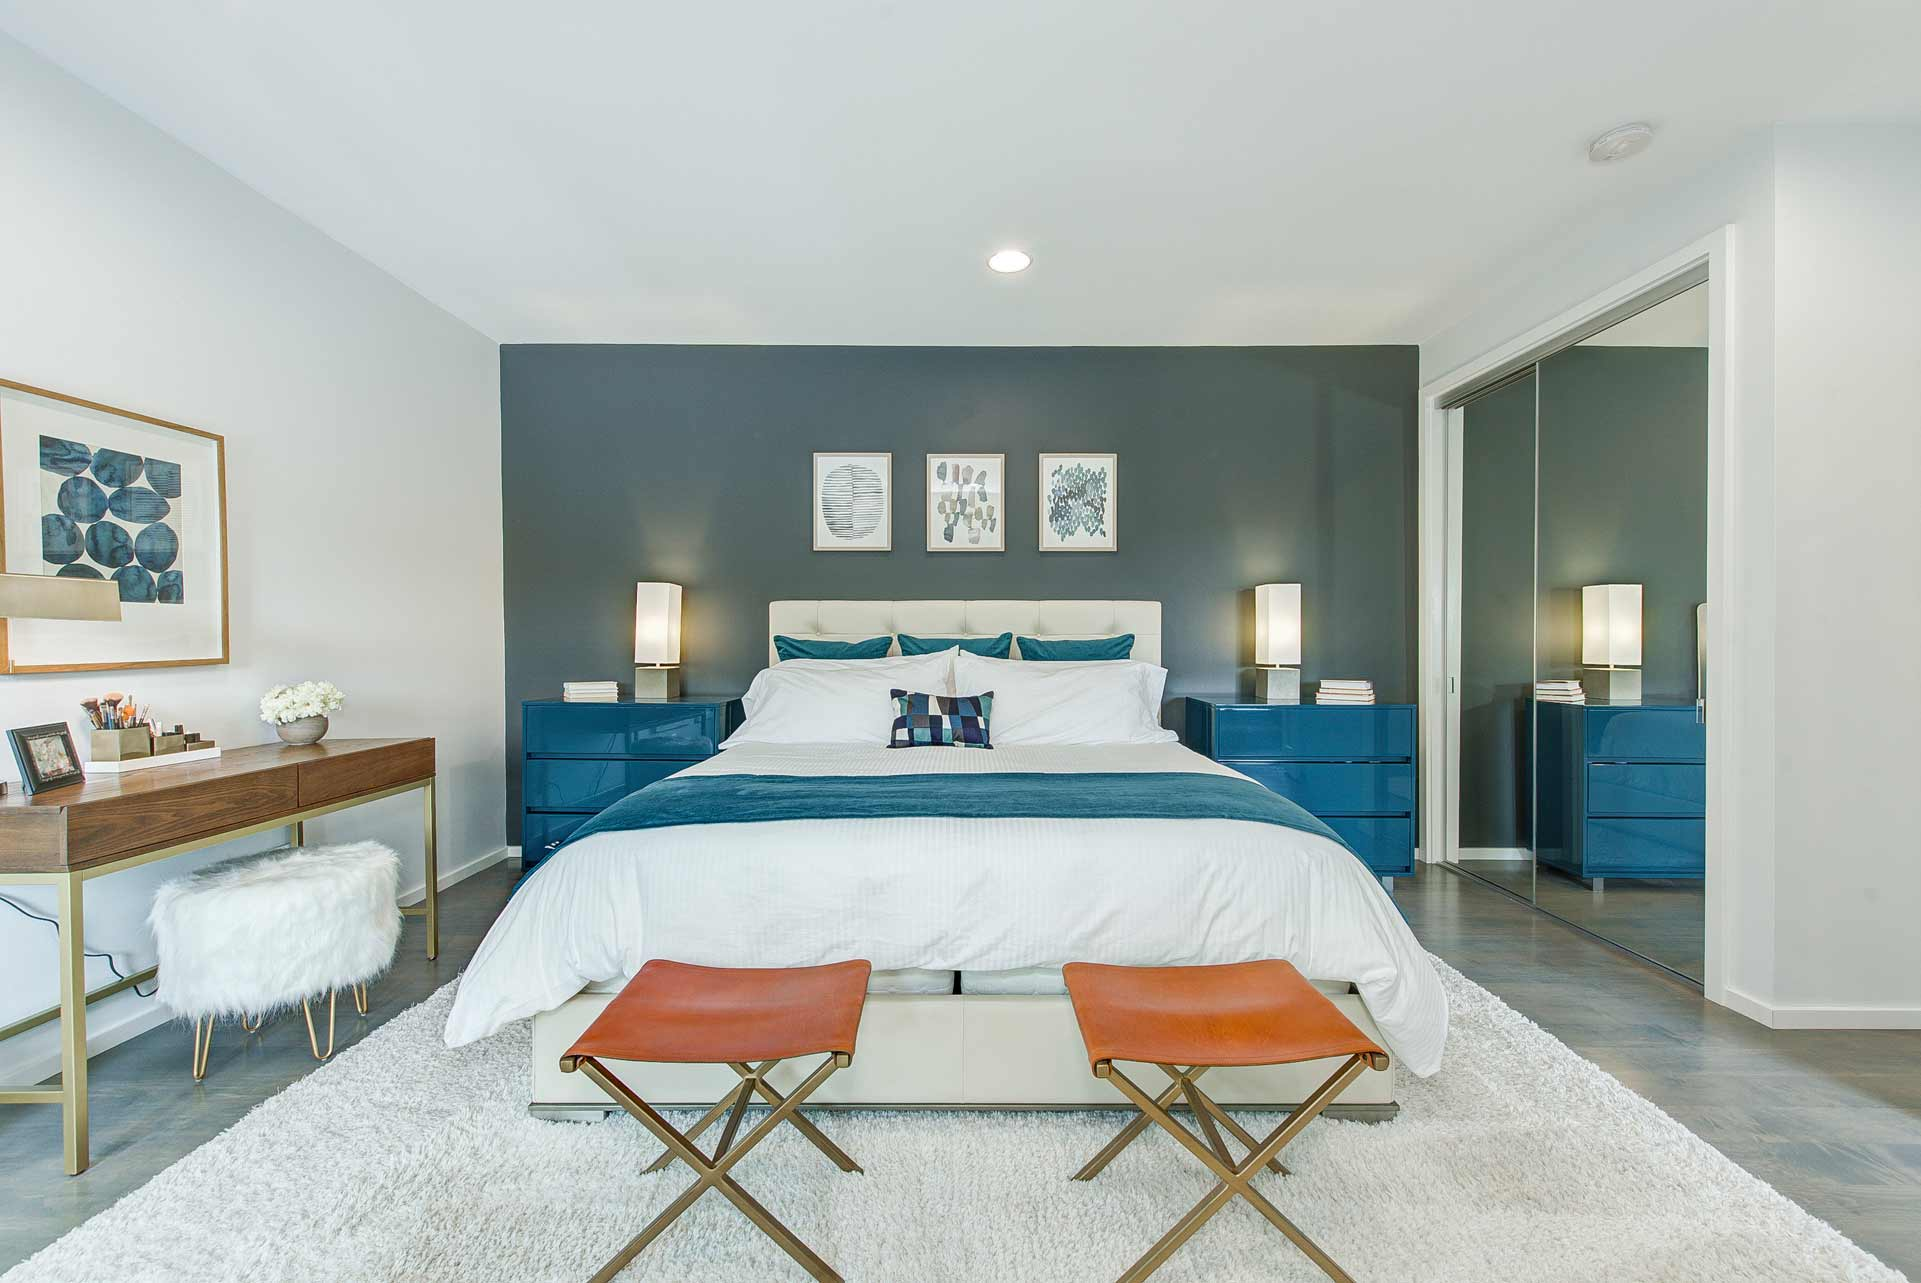 Master Bedroom - Reef Court Light Renovation - Geist Reservoir - Indianapolis, IN - Photo by Structured Photography